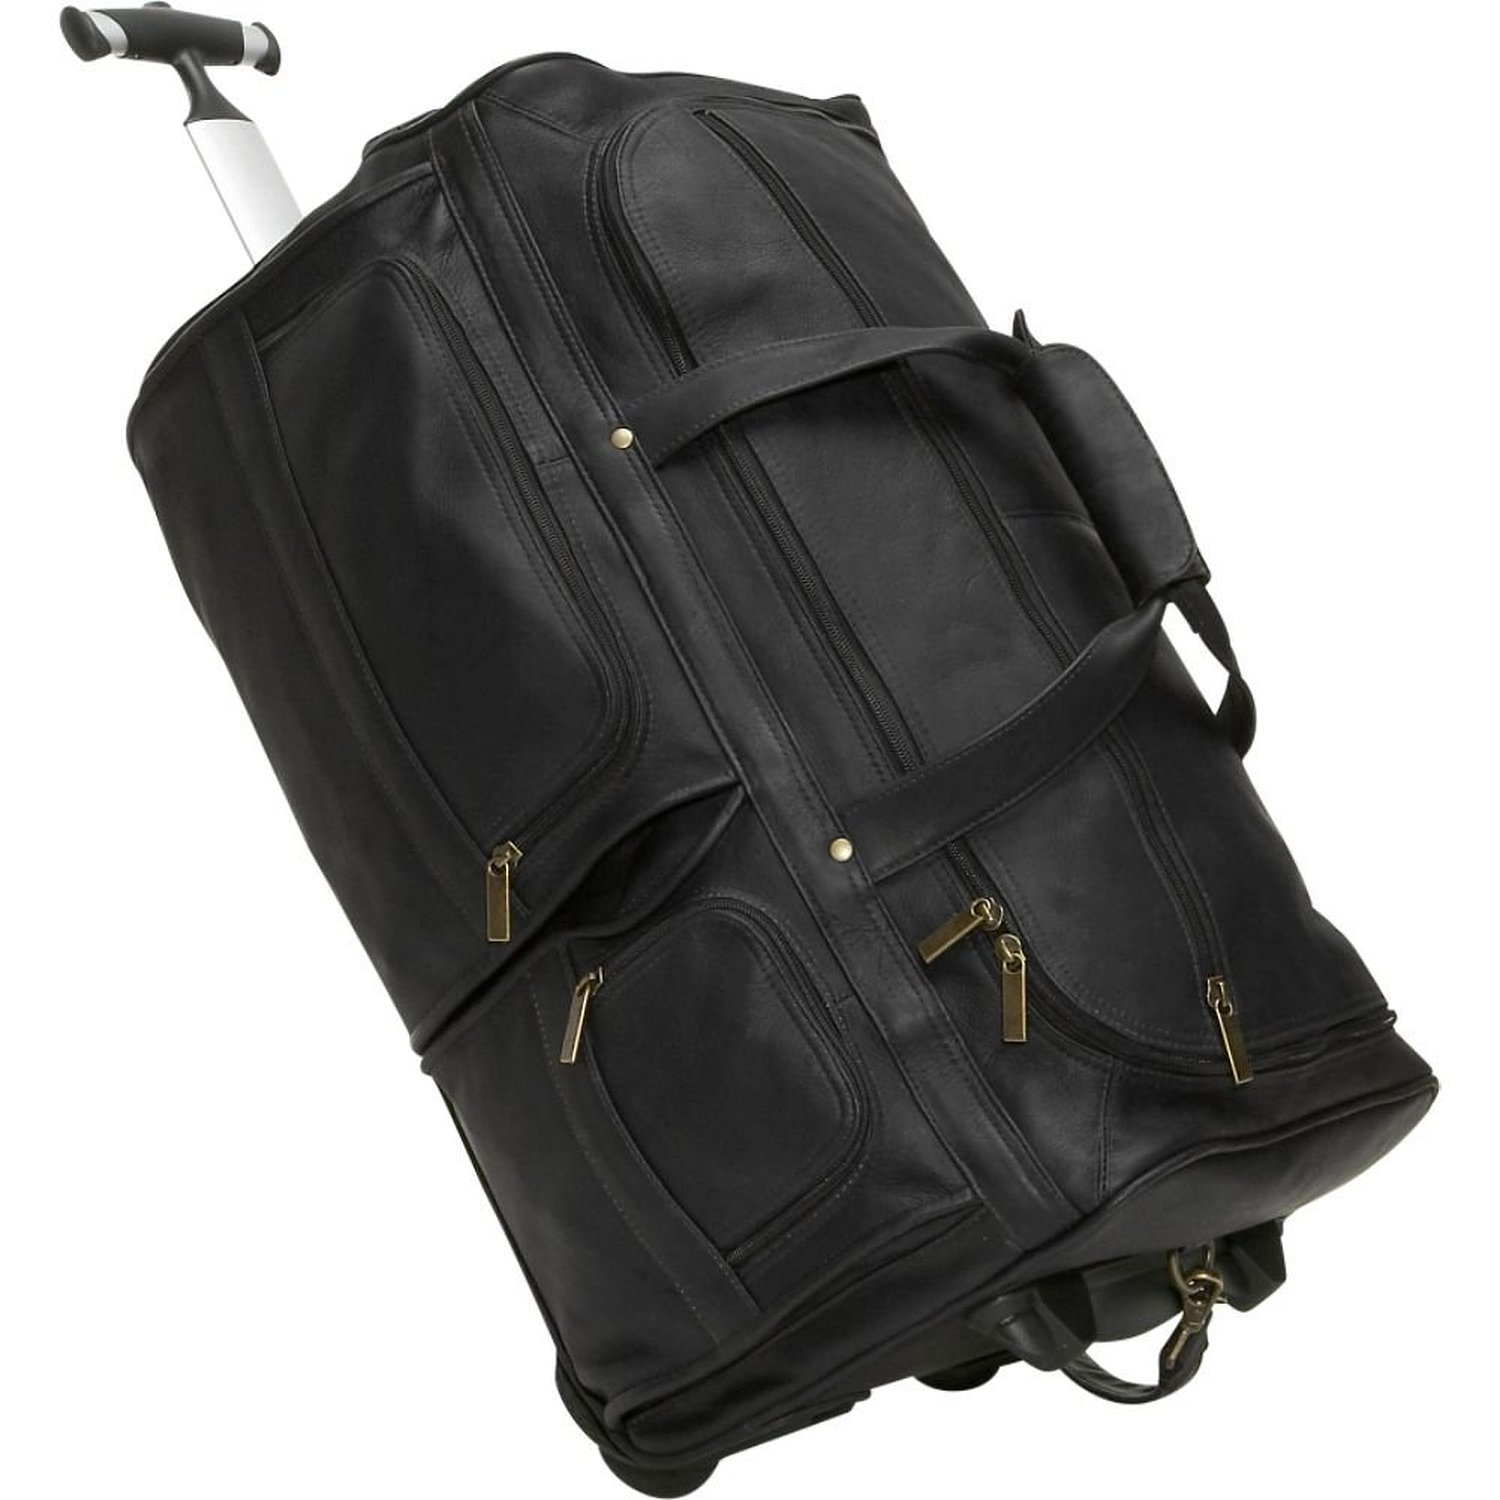 David King Leather 20 Rolling Duffel Bag in Black by David King